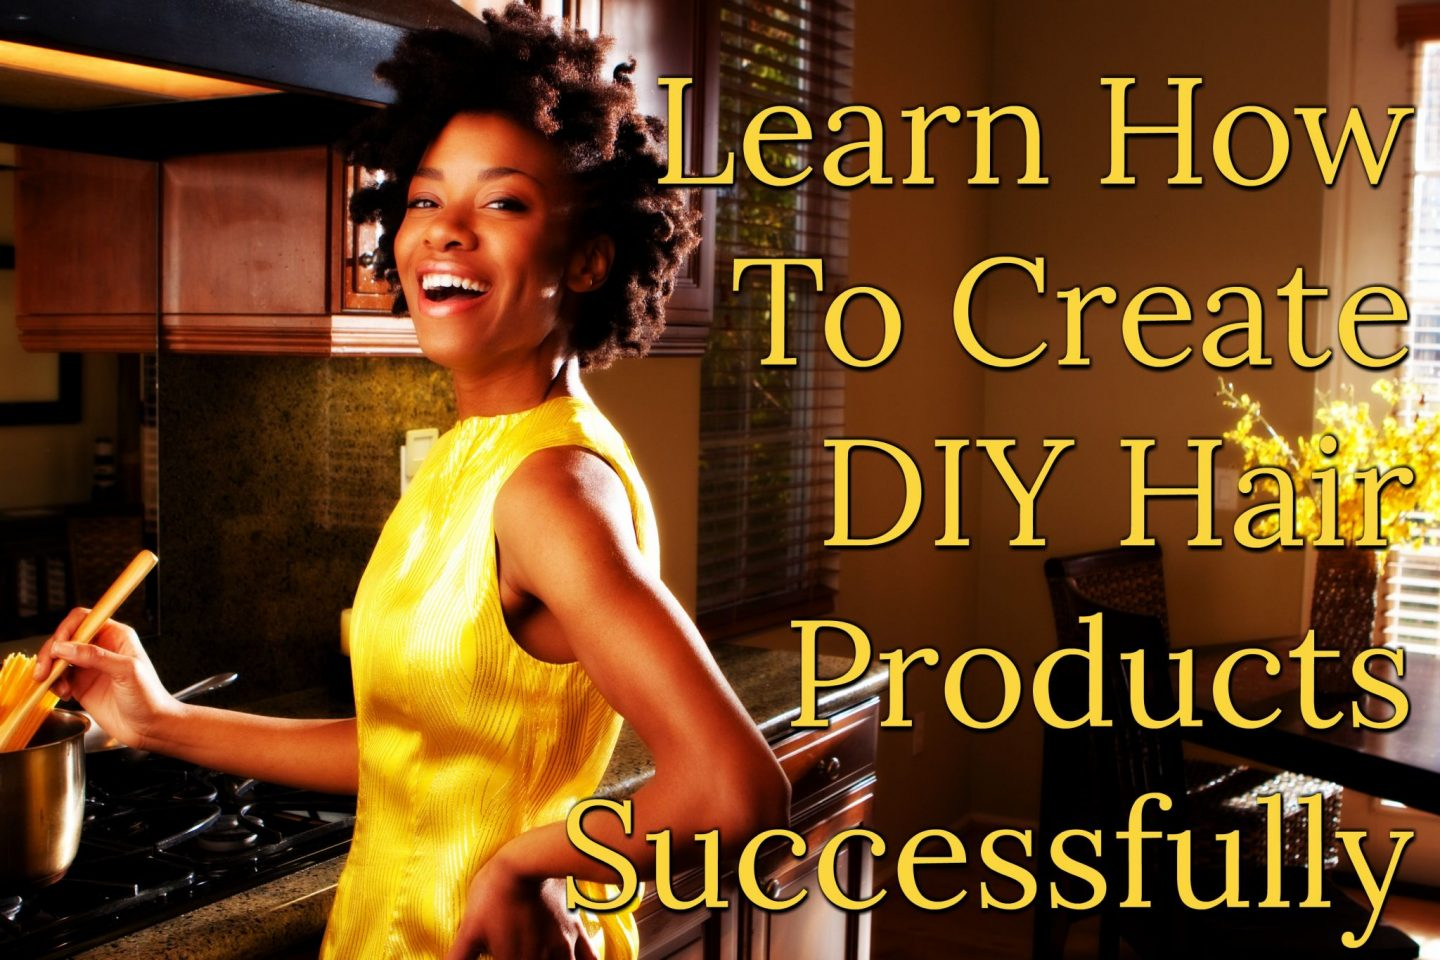 Want to create your own natural hair products from washing to conditioning to moisturizing? We share just what you need to know and do so you can become your own natural hair mixtress!